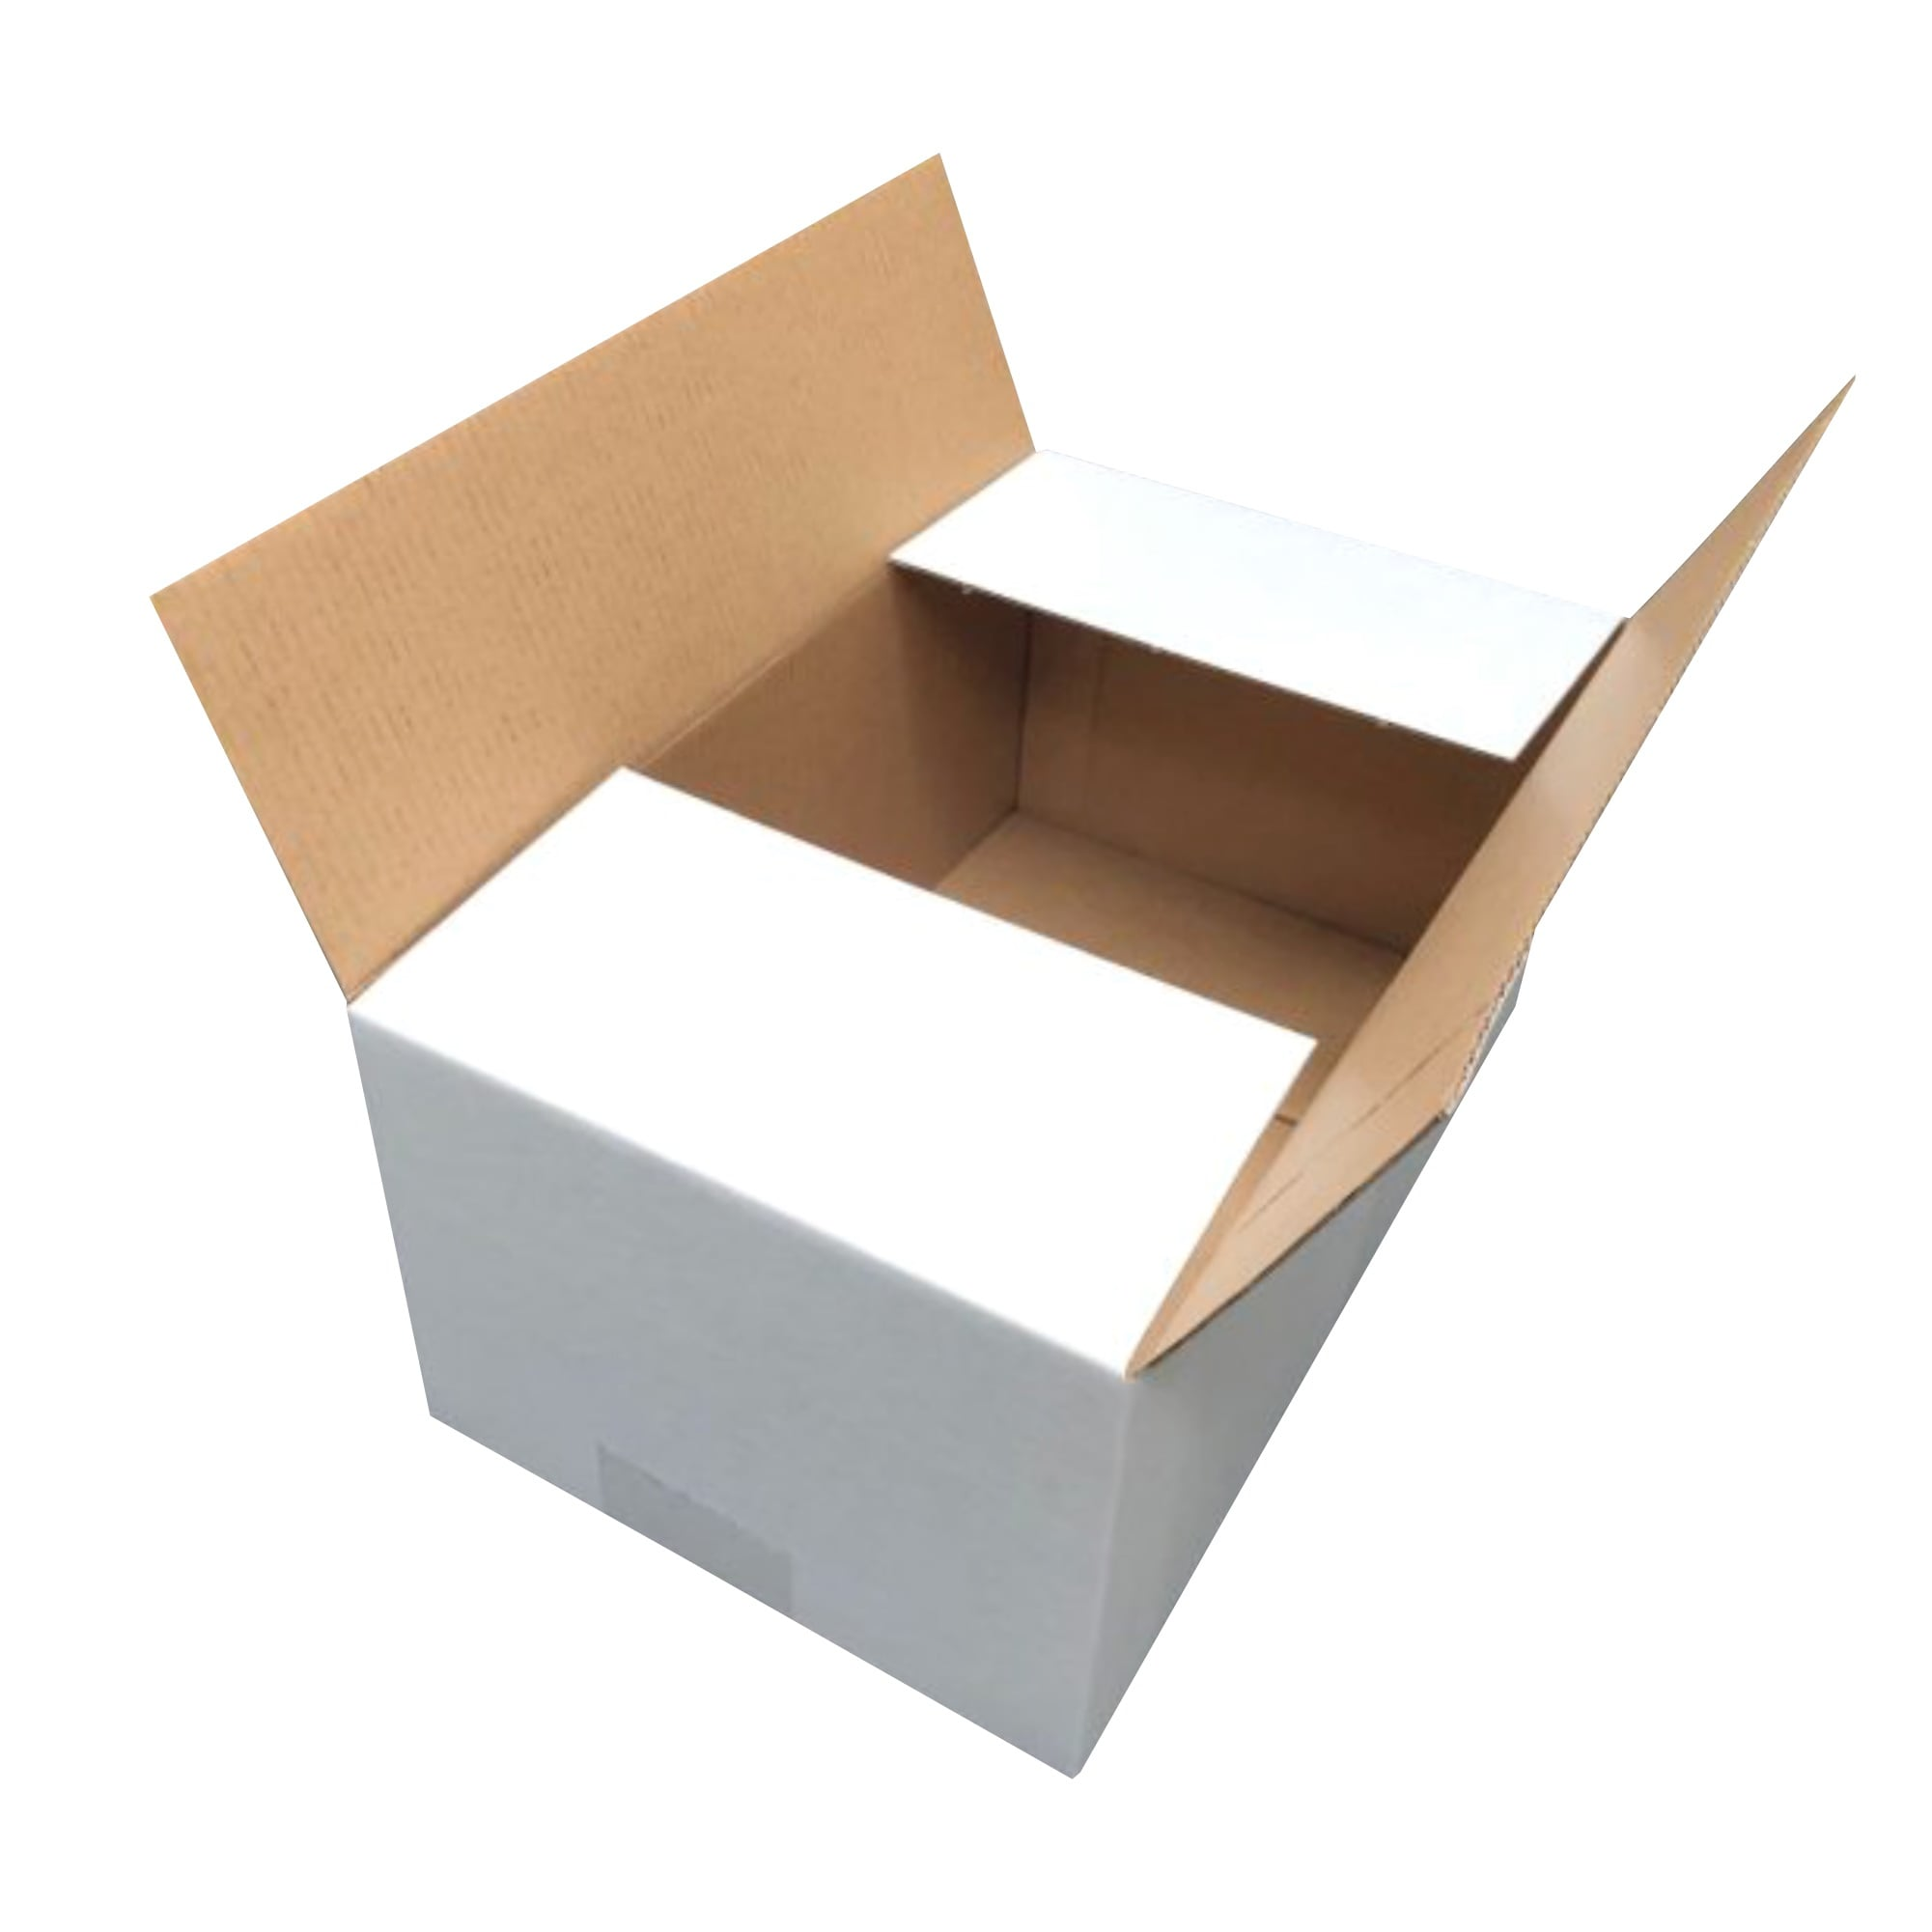 100pcs Regular Slotted 270 x 200 x 95mm Mailing Box